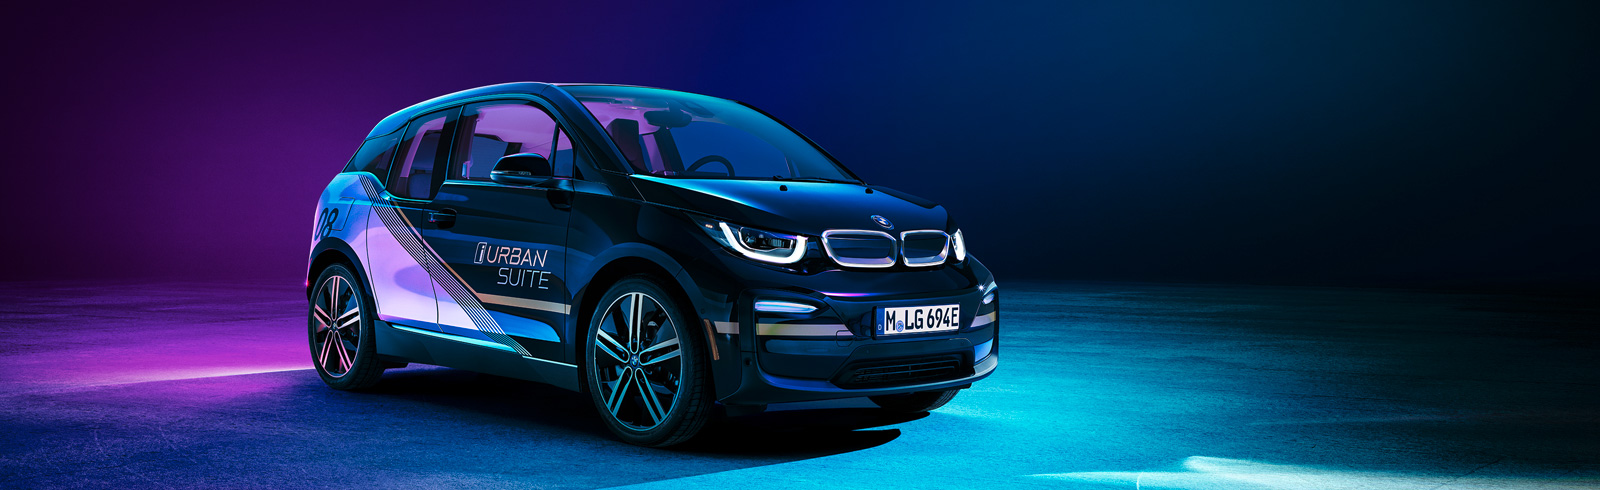 BMW i3 Urban Suite will be unveiled at CES 2020